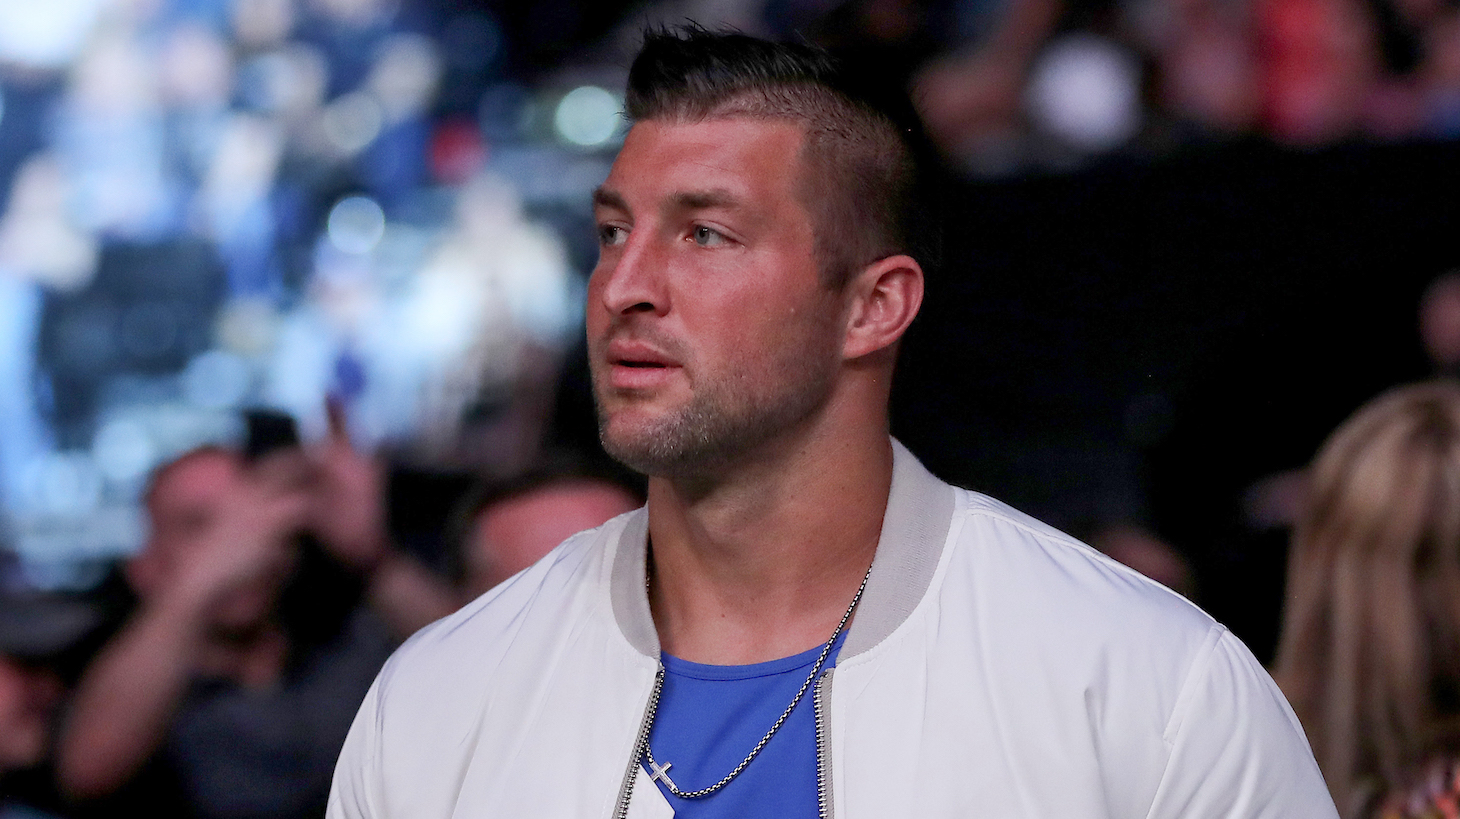 JACKSONVILLE, FL - APRIL 24: Tim Tebow is seen by the octagon during UFC 261 at VyStar Veterans Memorial Arena on April 24, 2021 in Jacksonville, Florida. (Photo by Alex Menendez/Getty Images)